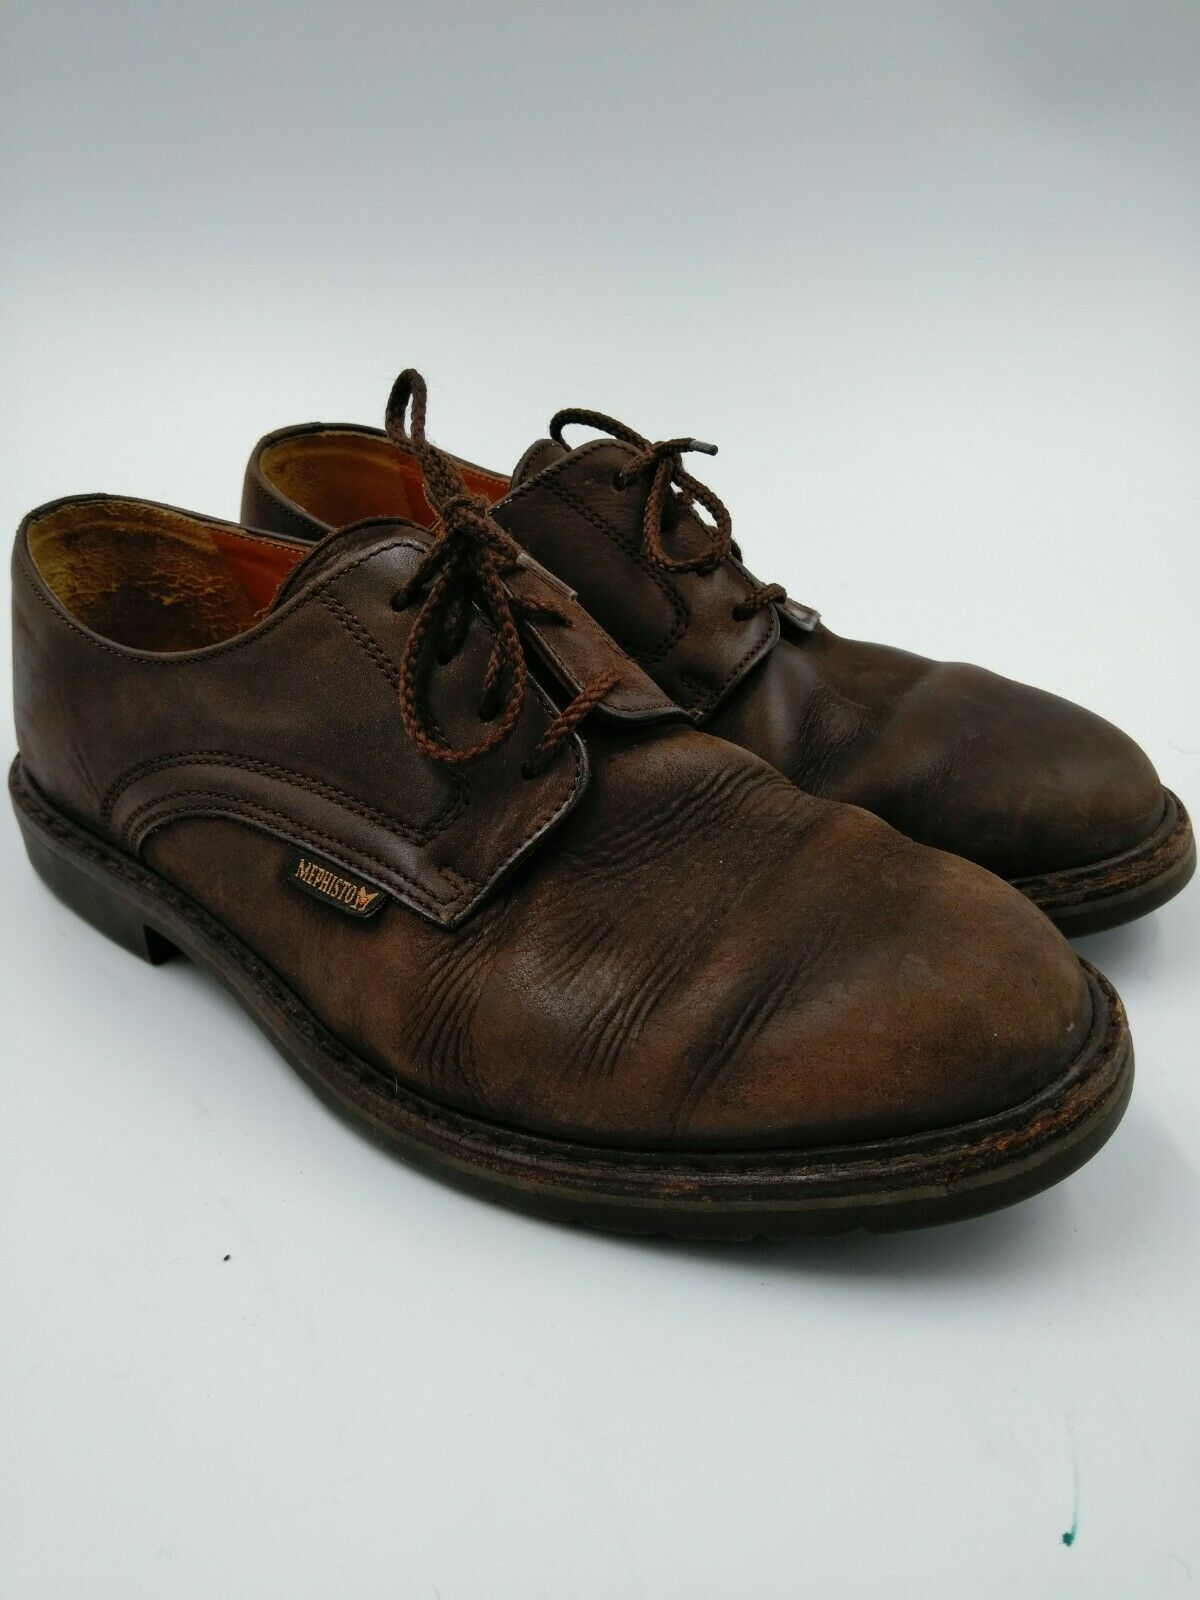 MEPHISTO GOODYEAR WELT AIR RELAX MEN'S BRN. LEATHER SHOES size 8 made in france